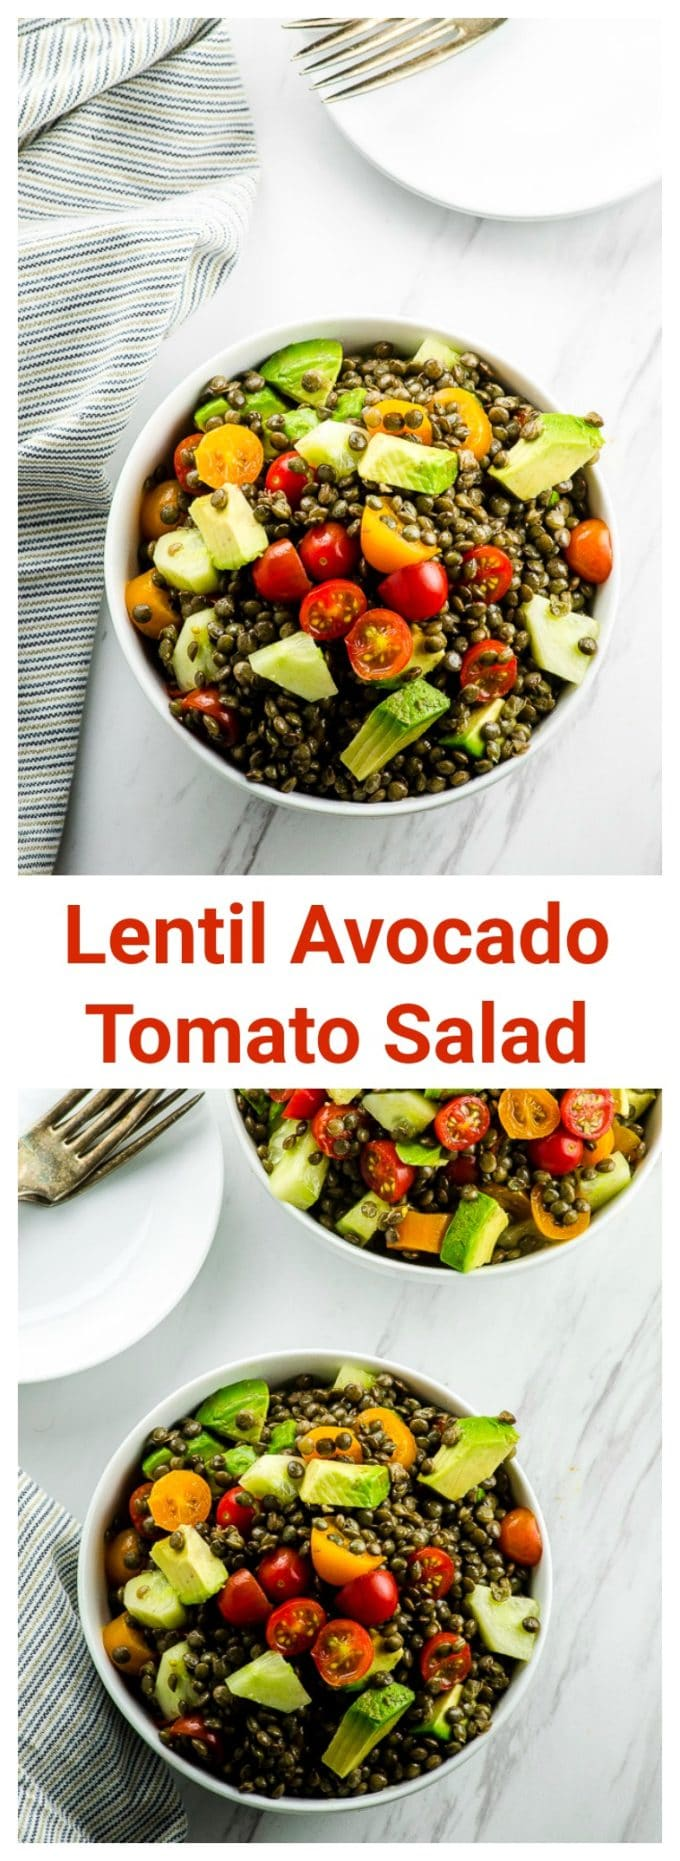 Lentil Avocado and Tomato Salad. A fresh, colorful and protein loaded salad, that is great for lunch or dinner or as a side dish for your next gathering or BBQ